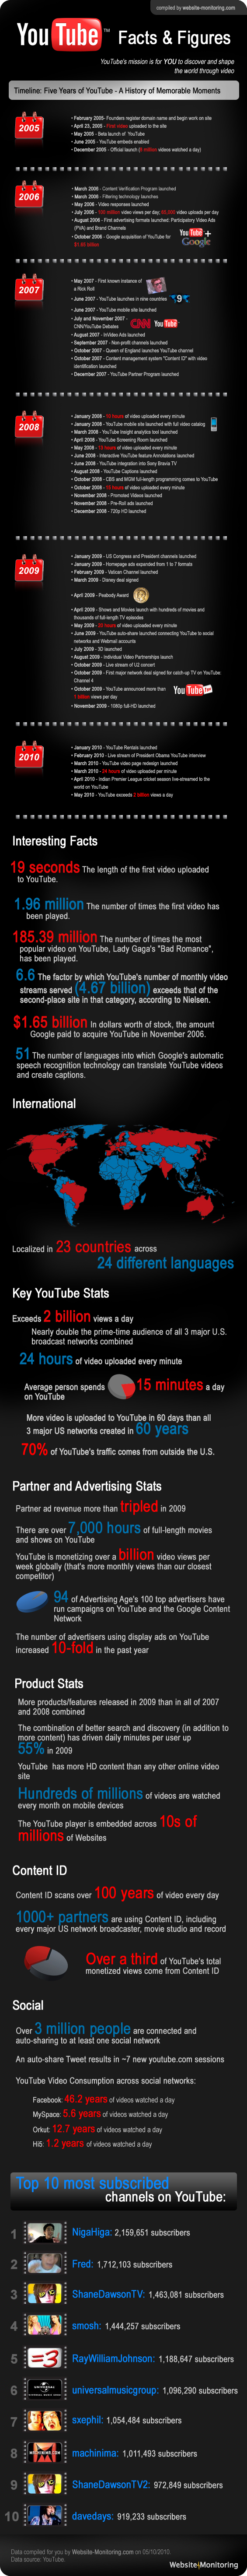 youtube infographic 565